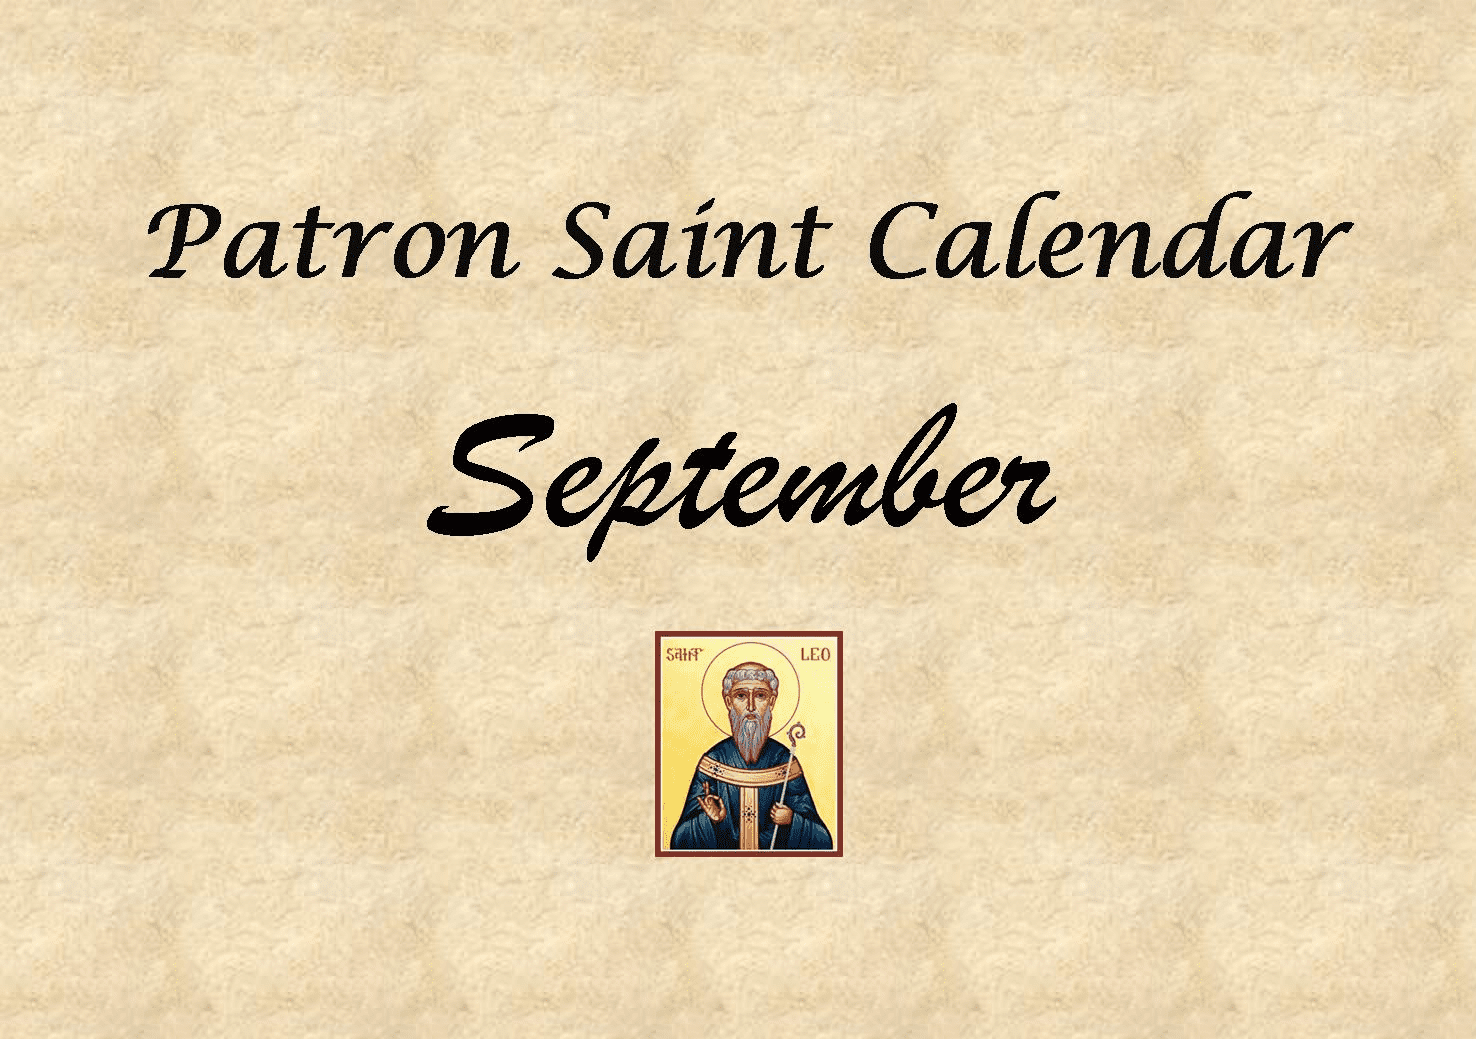 Patron Saint Memorial Feast Day for the Month of September